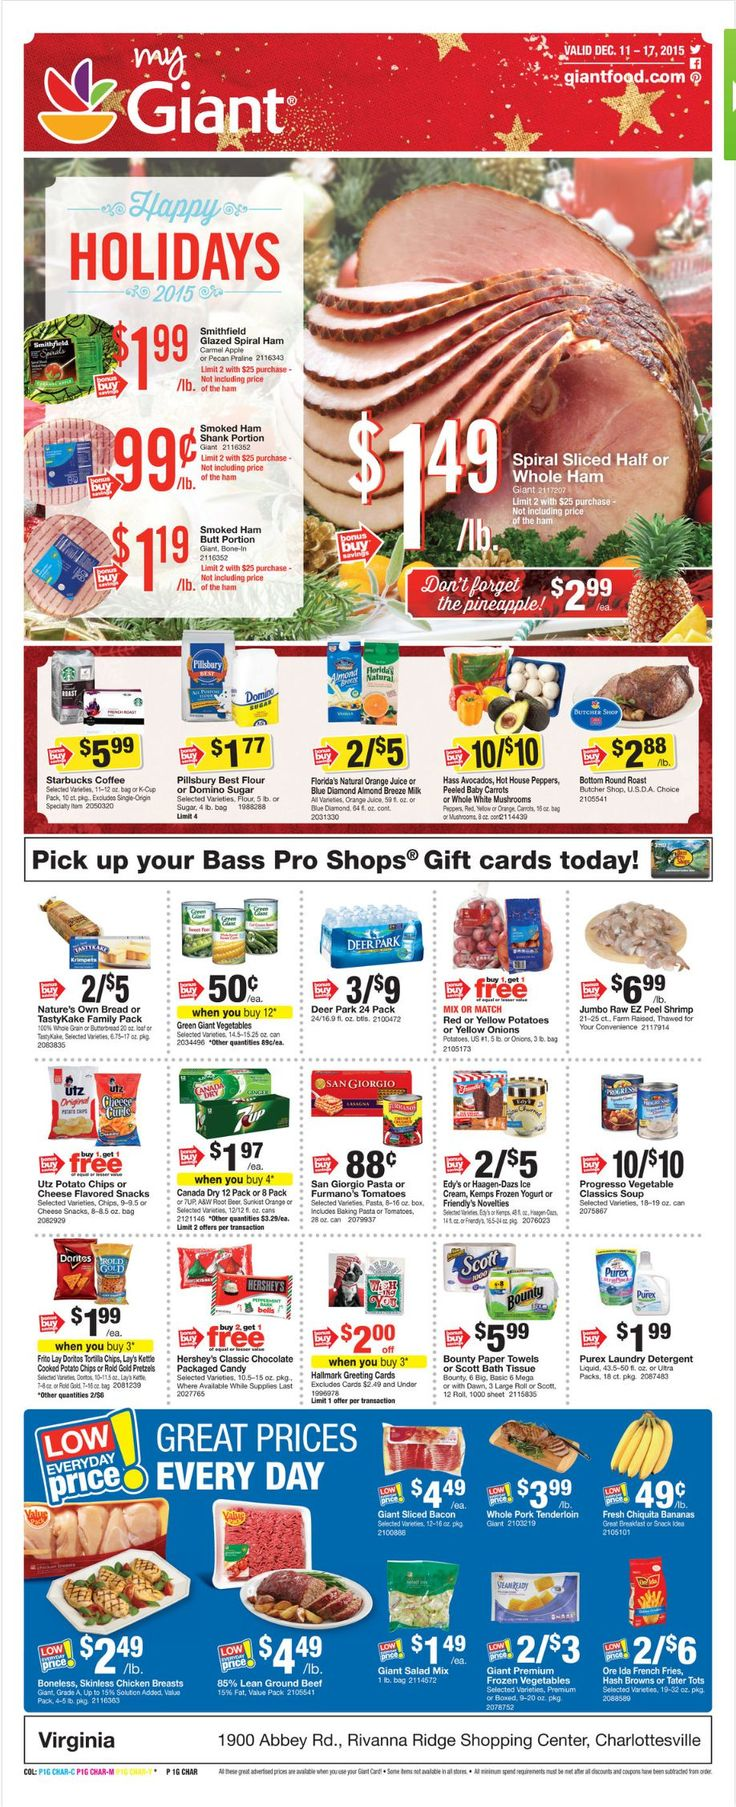 Giant Food Weekly Ad December 11 - 17, 2015 - http://www.kaitalog.com/giant-food-weekly-ad.html